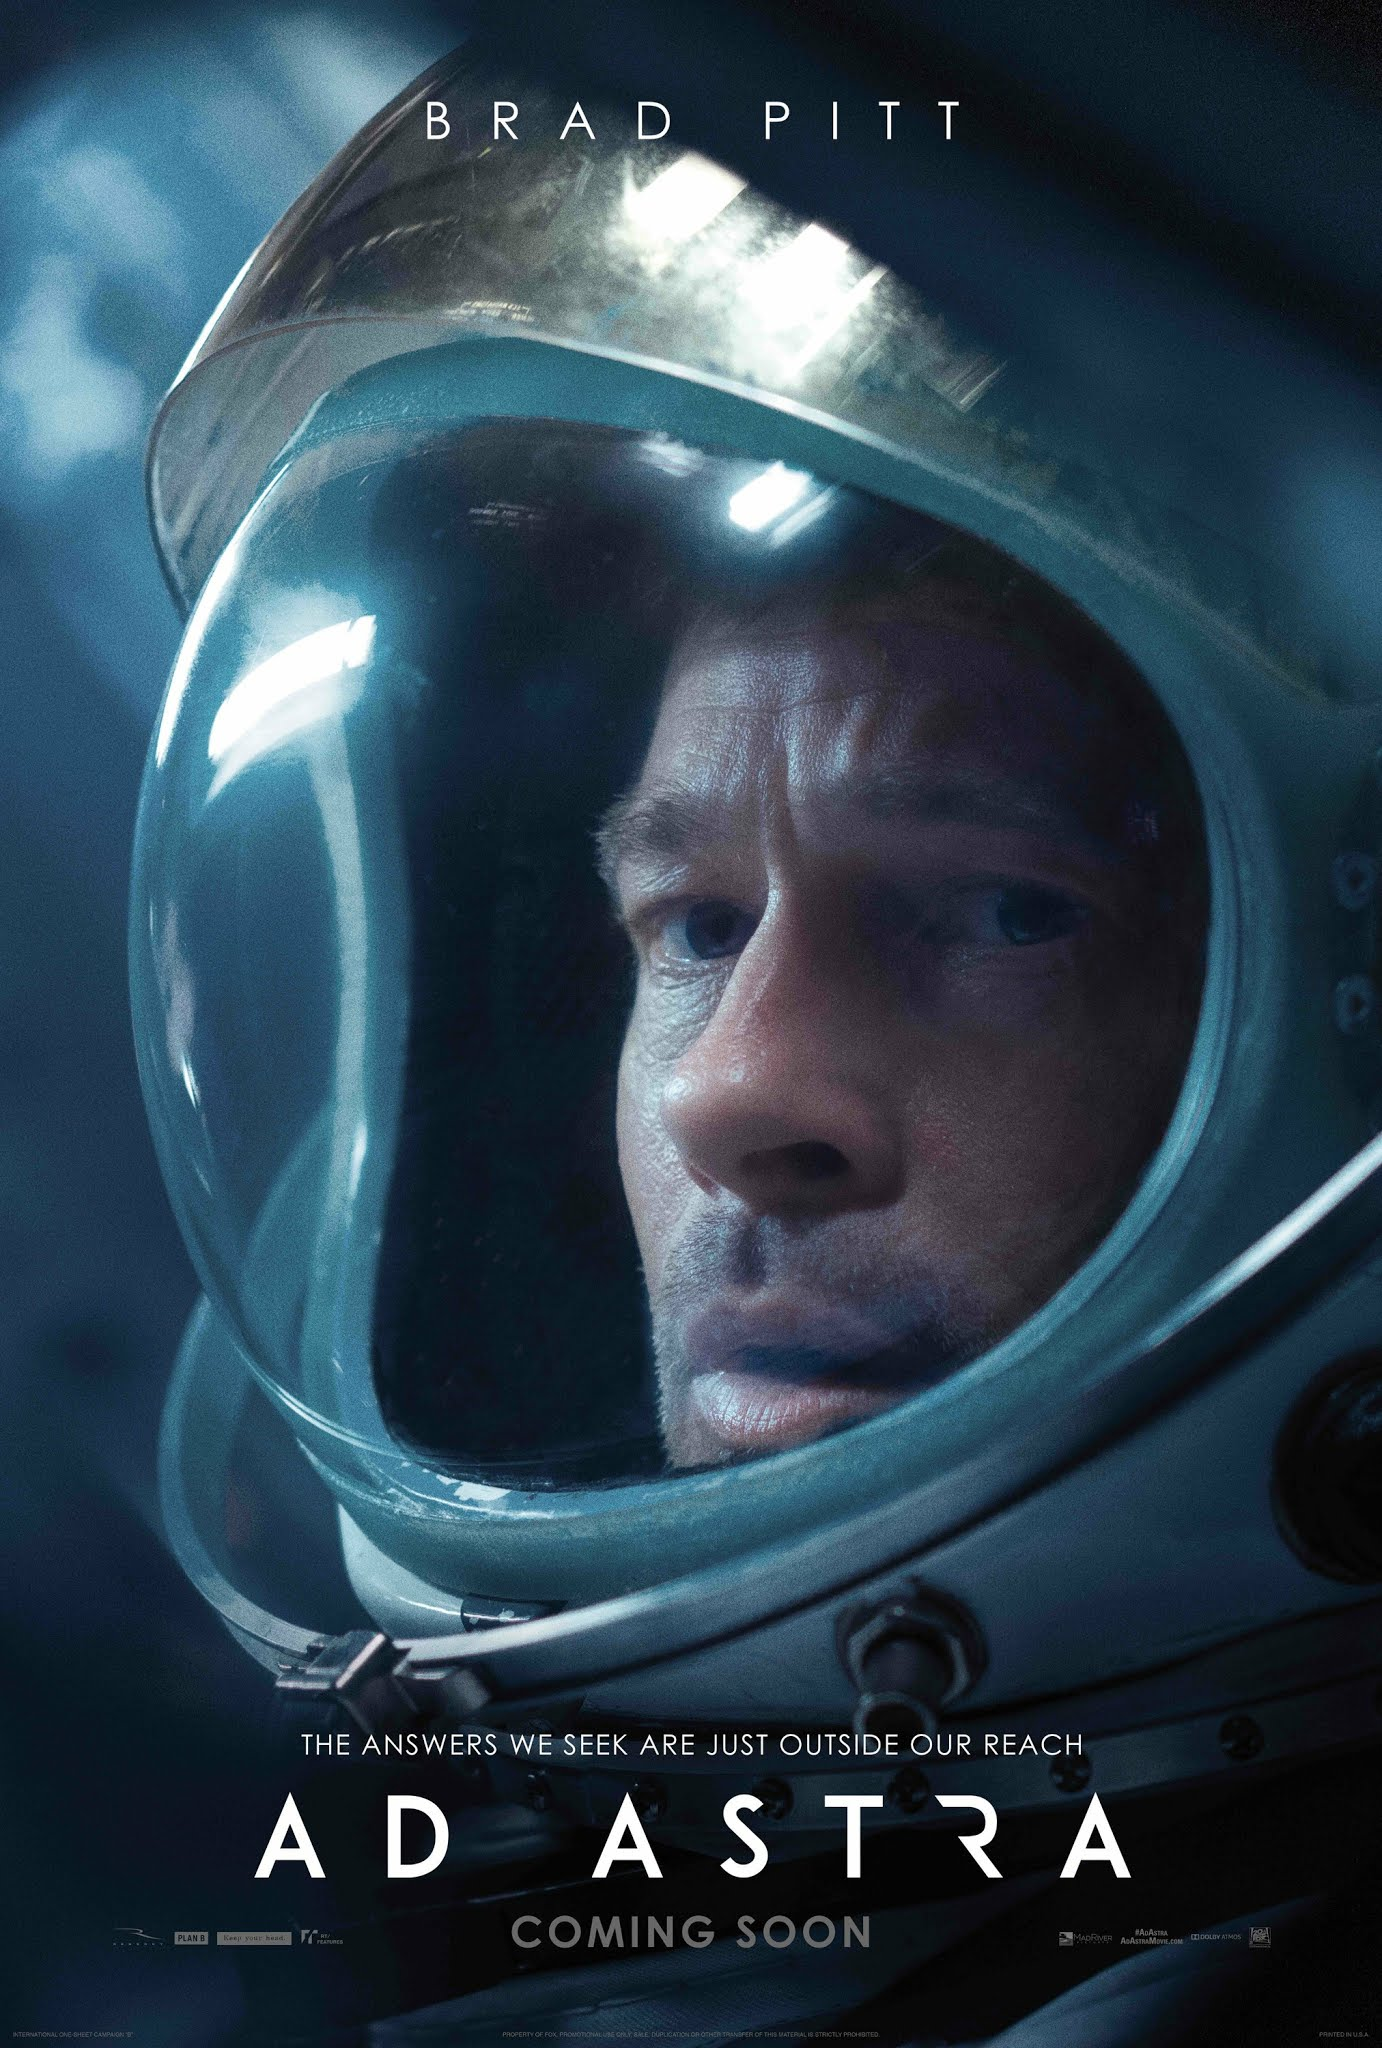 ad astra film recenzja brad pitt tommy lee jones